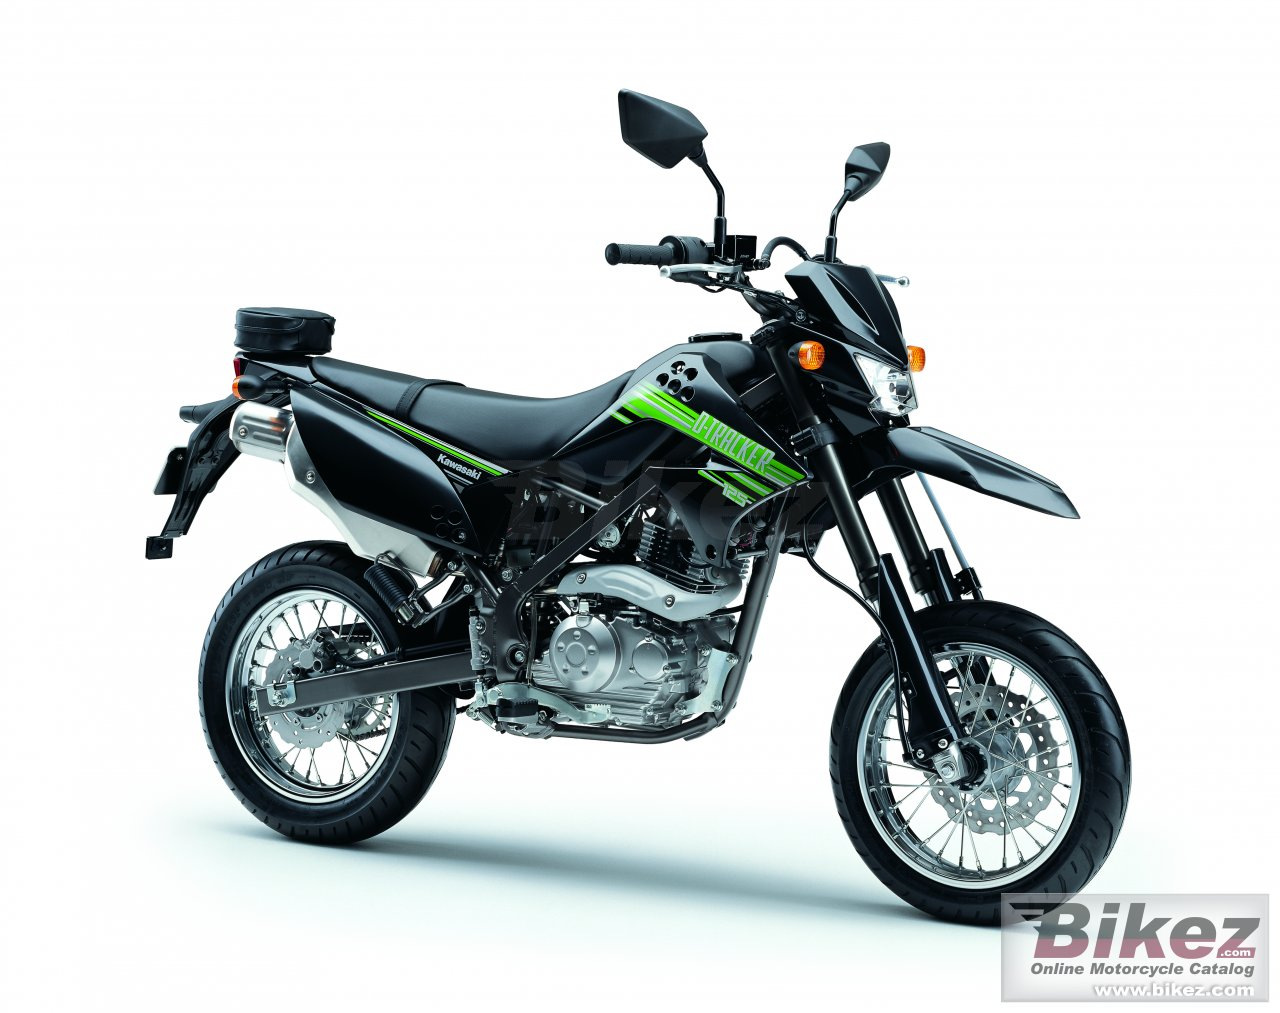 Big Kawasaki d-tracker 125 picture and wallpaper from Bikez.com